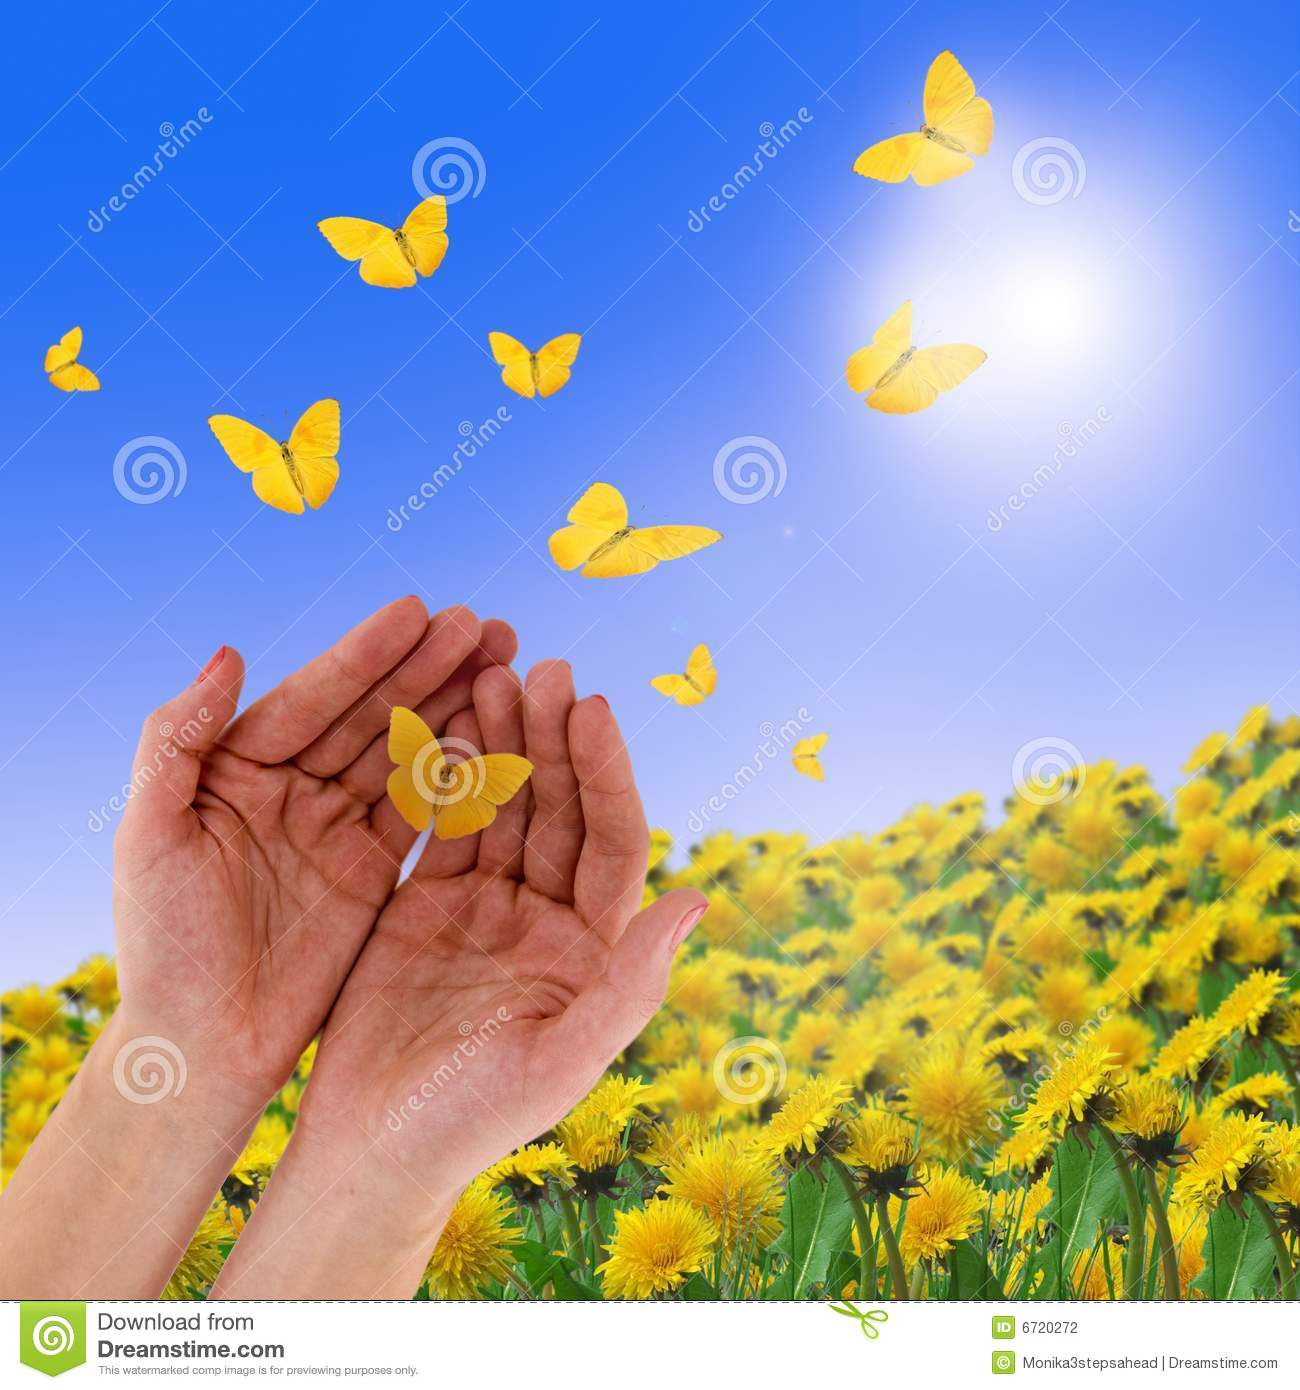 Hands and butterflies